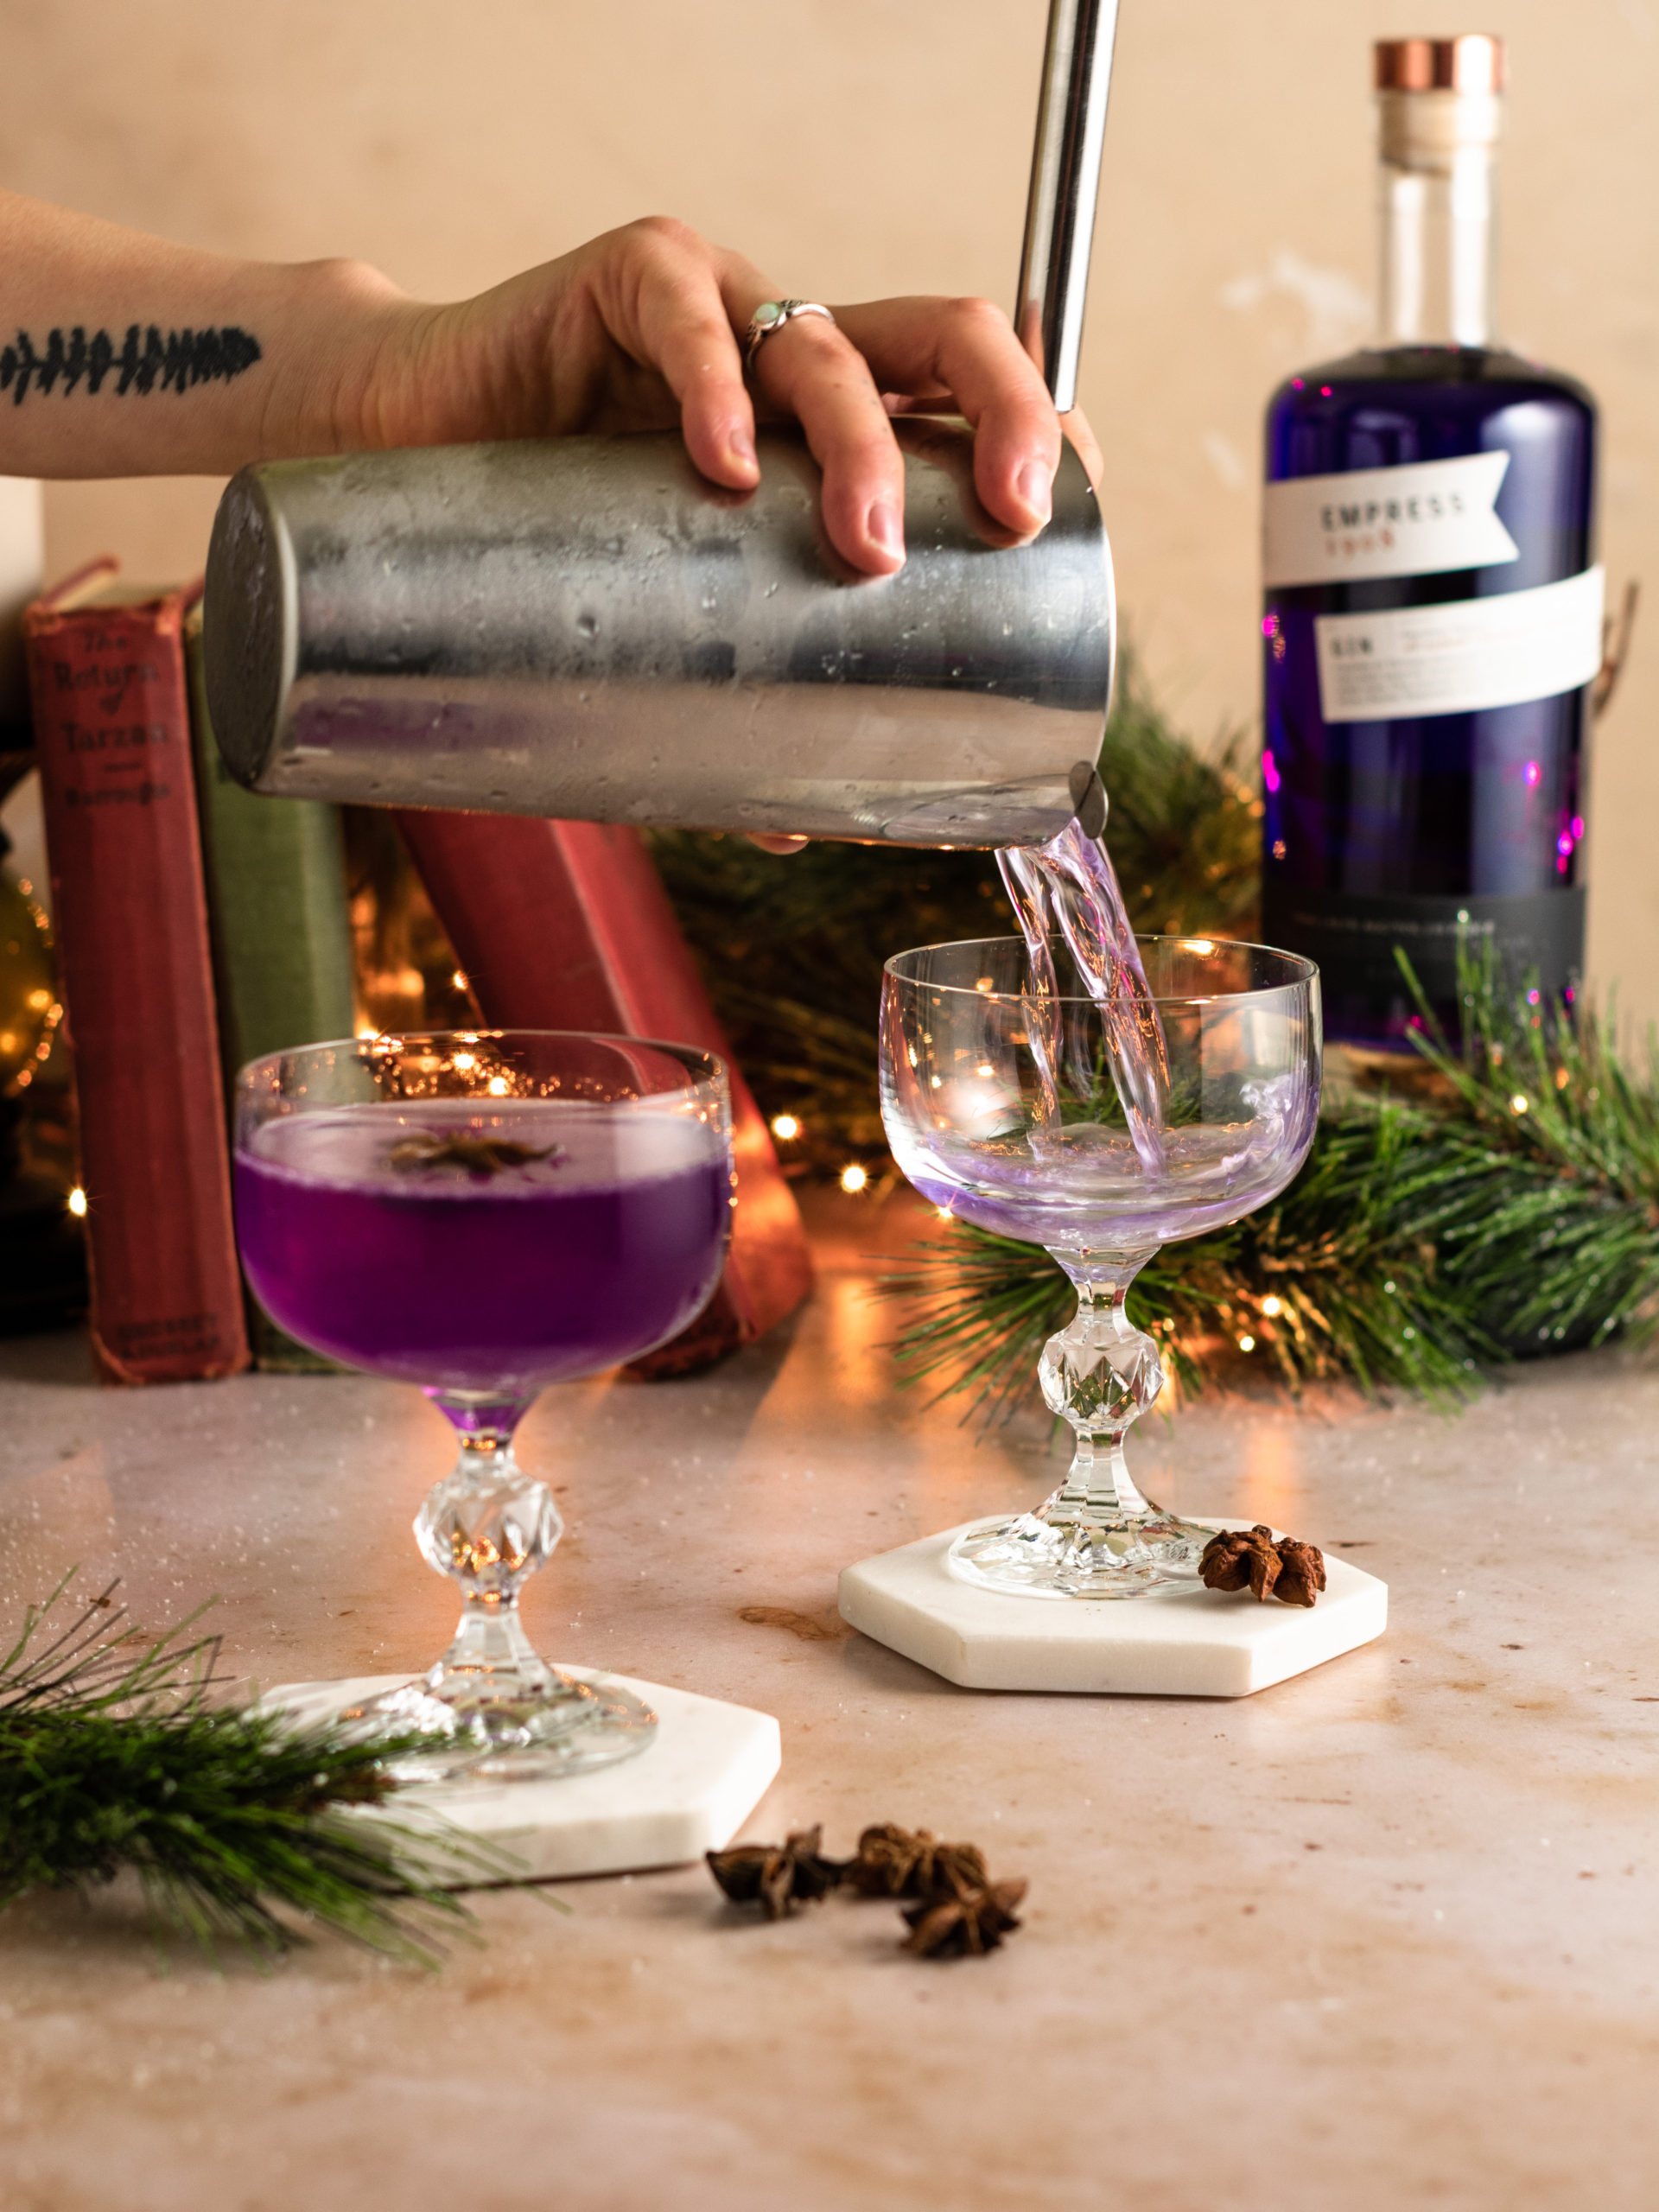 Pouring holiday gin cocktails from the shaker